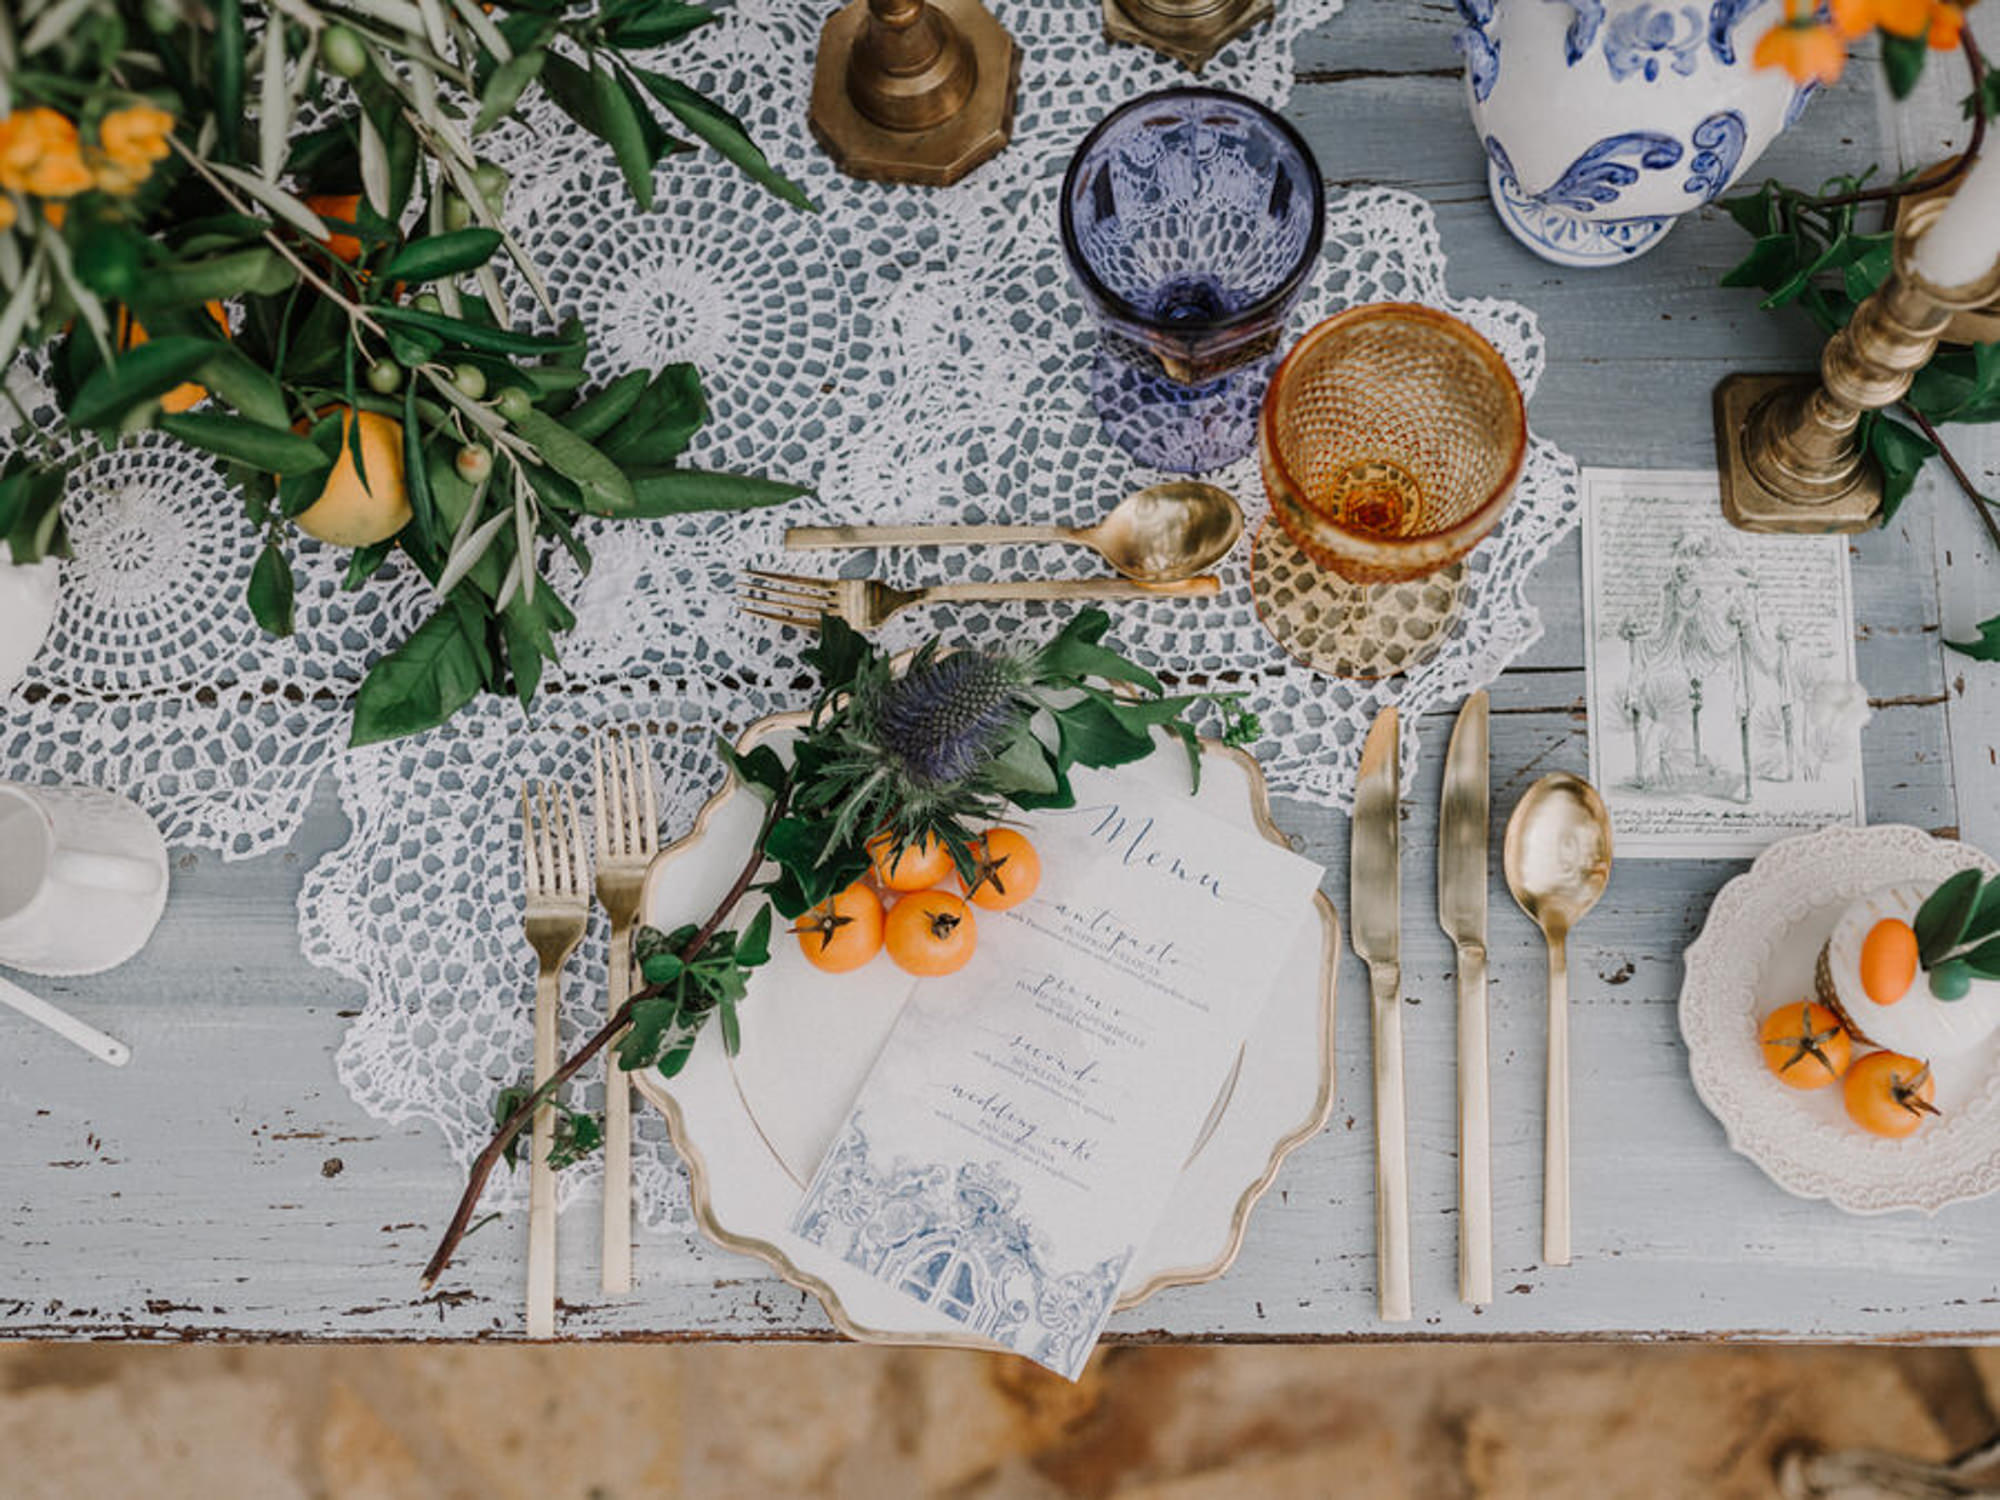 italian-place-setting-with-thistle-and-tangerines-worlds-best-wedding-photos-gianluca-adiovaso-italy-wedding-photographers